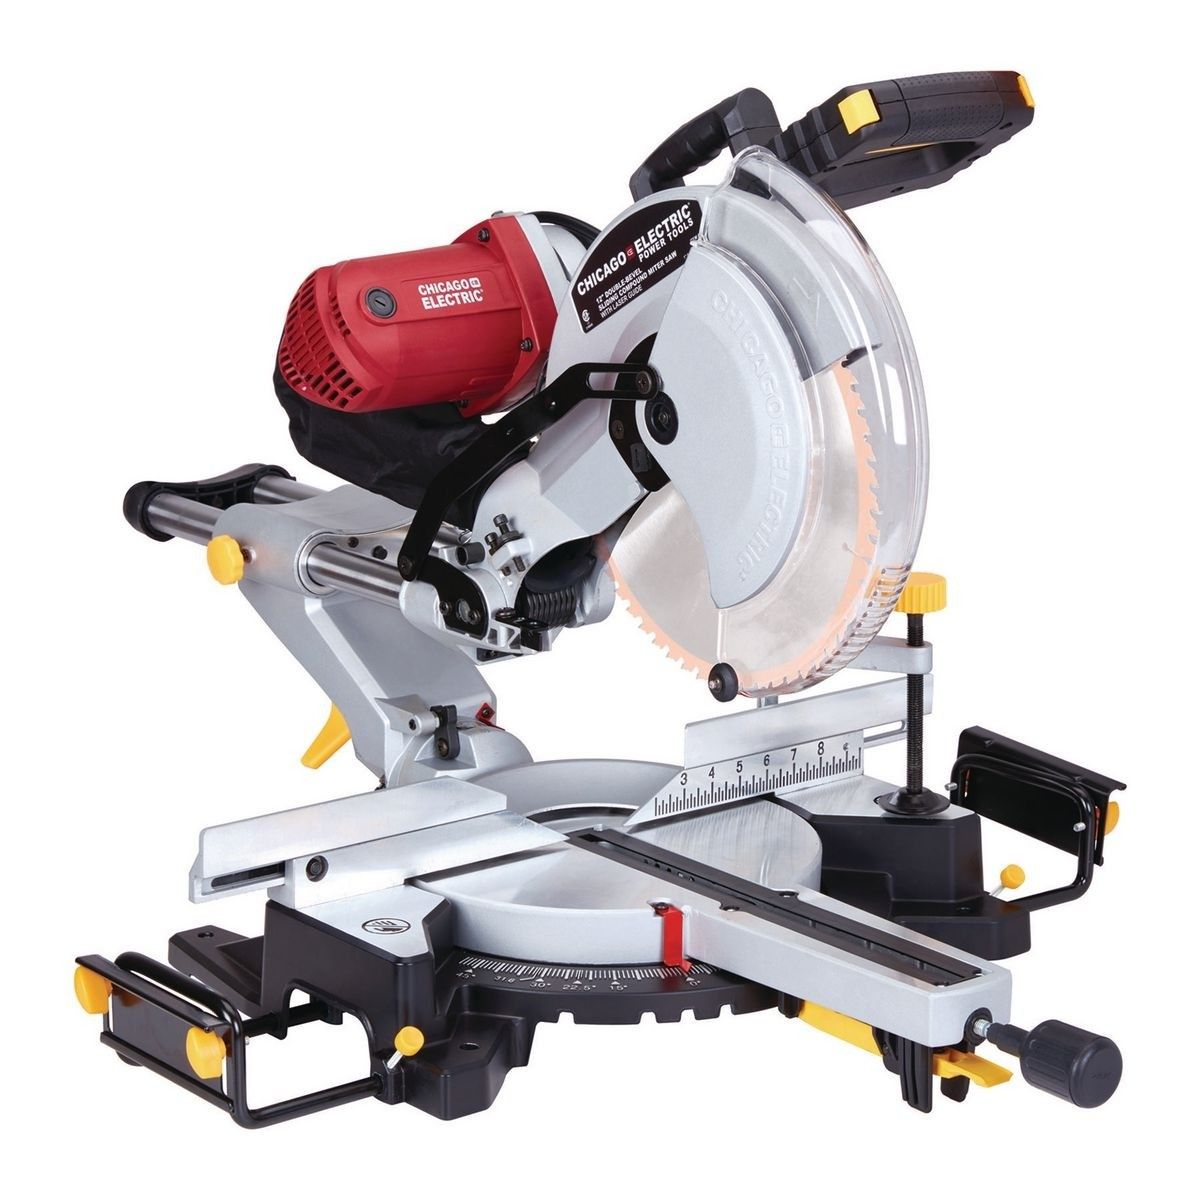 12 In Dual Bevel Sliding Compound Miter Saw With Laser Guide System Compound Mitre Saw Sliding Compound Miter Saw Miter Saw